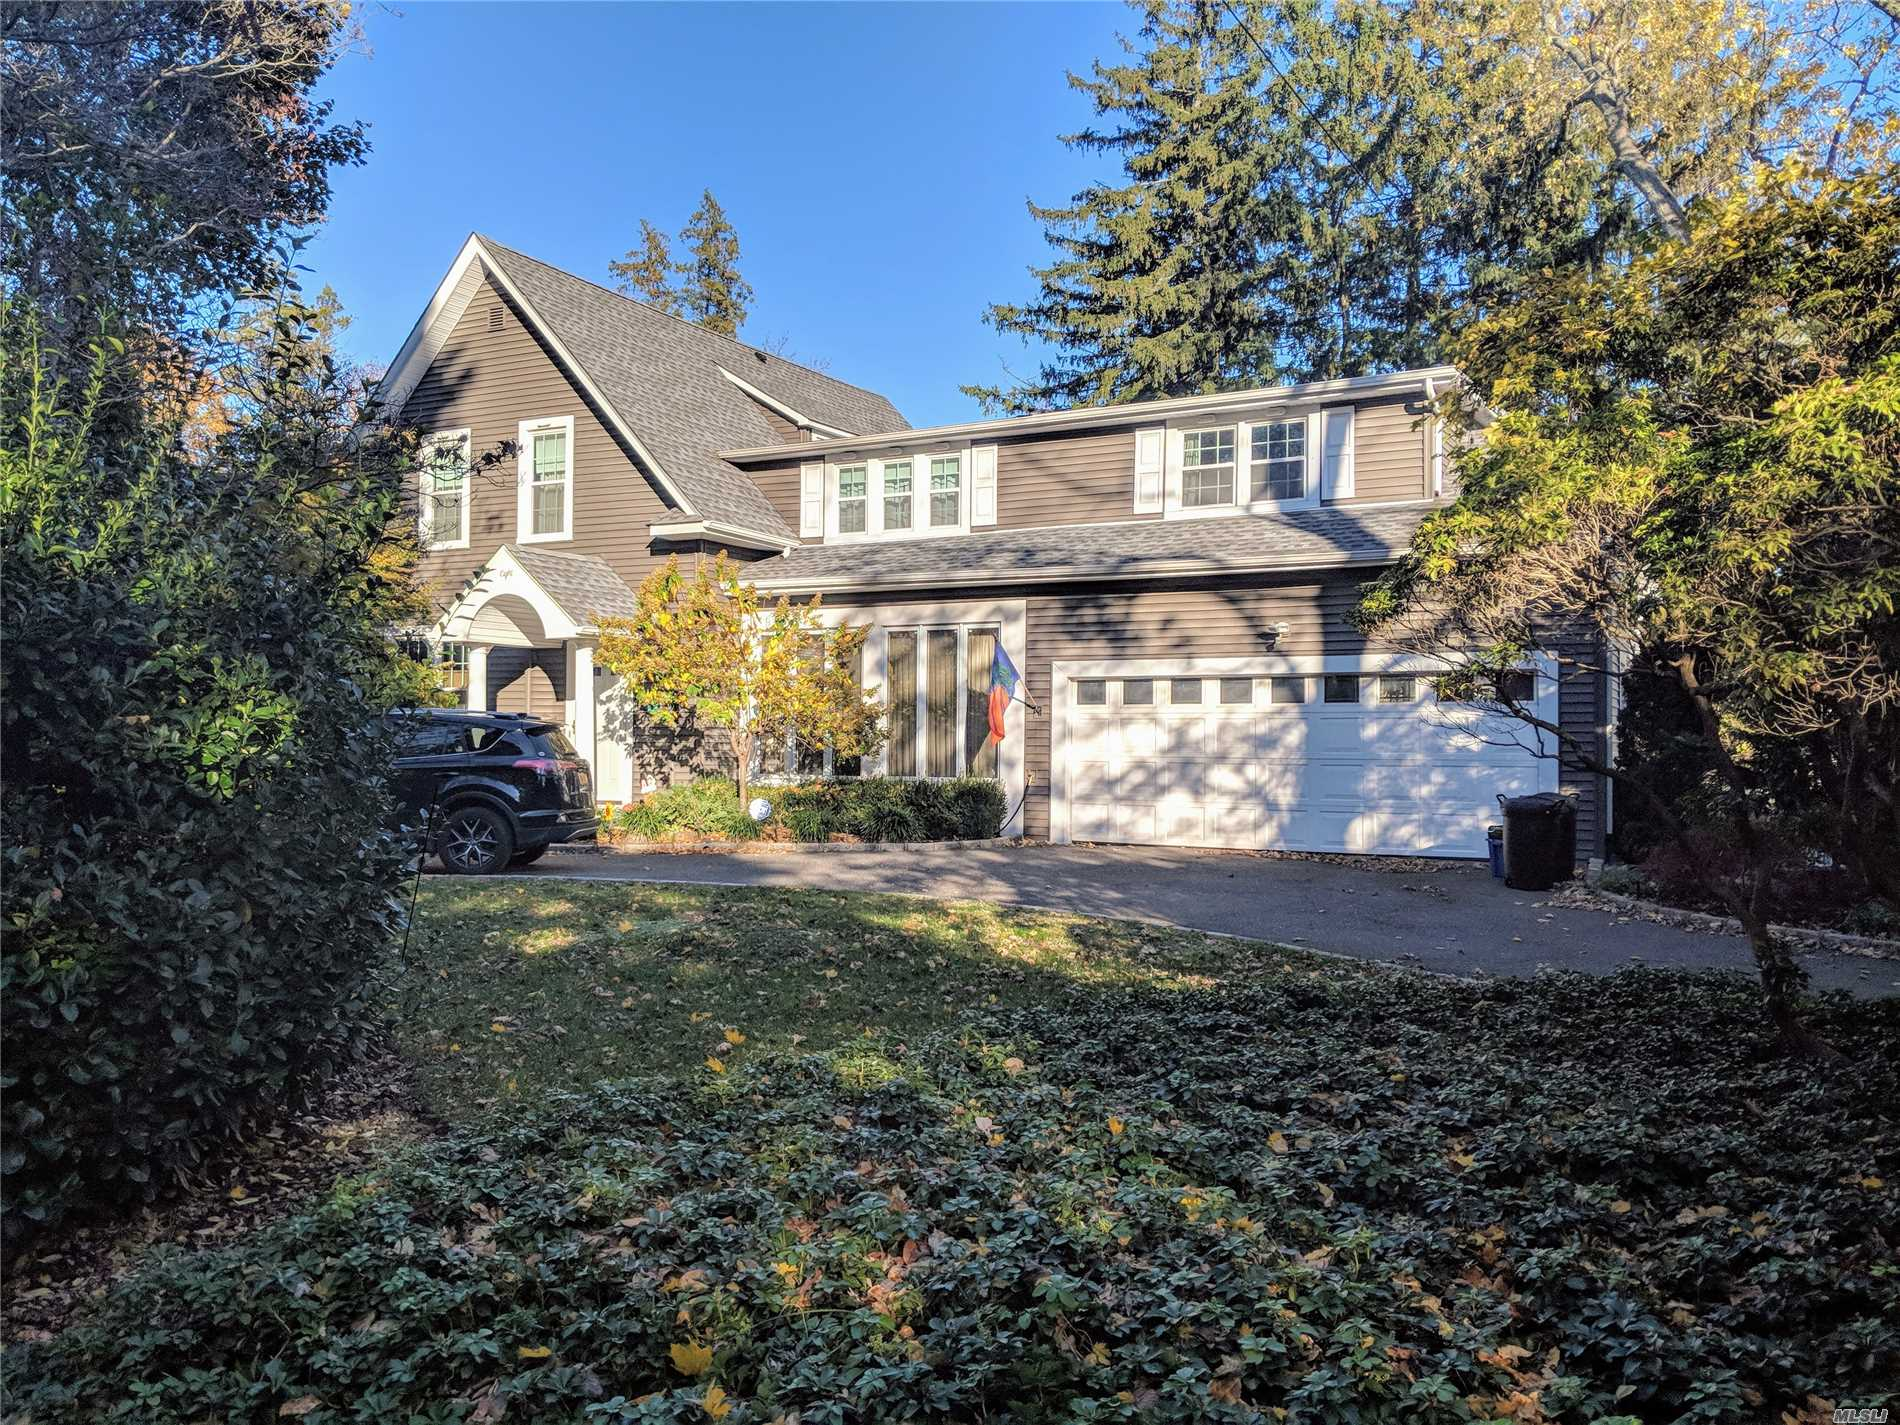 This Large Redone Colonial Has A Circular Driveway, New Quartz Eik, Wine Cellar, New Cac, New Roof, New Washer & Dryer, New Roof, New Windows, New Siding & Alarm System. Grand Rooms And Wonderfully Priced. Possible Mother Daughter .34 Acre. Walk To Train And Town.